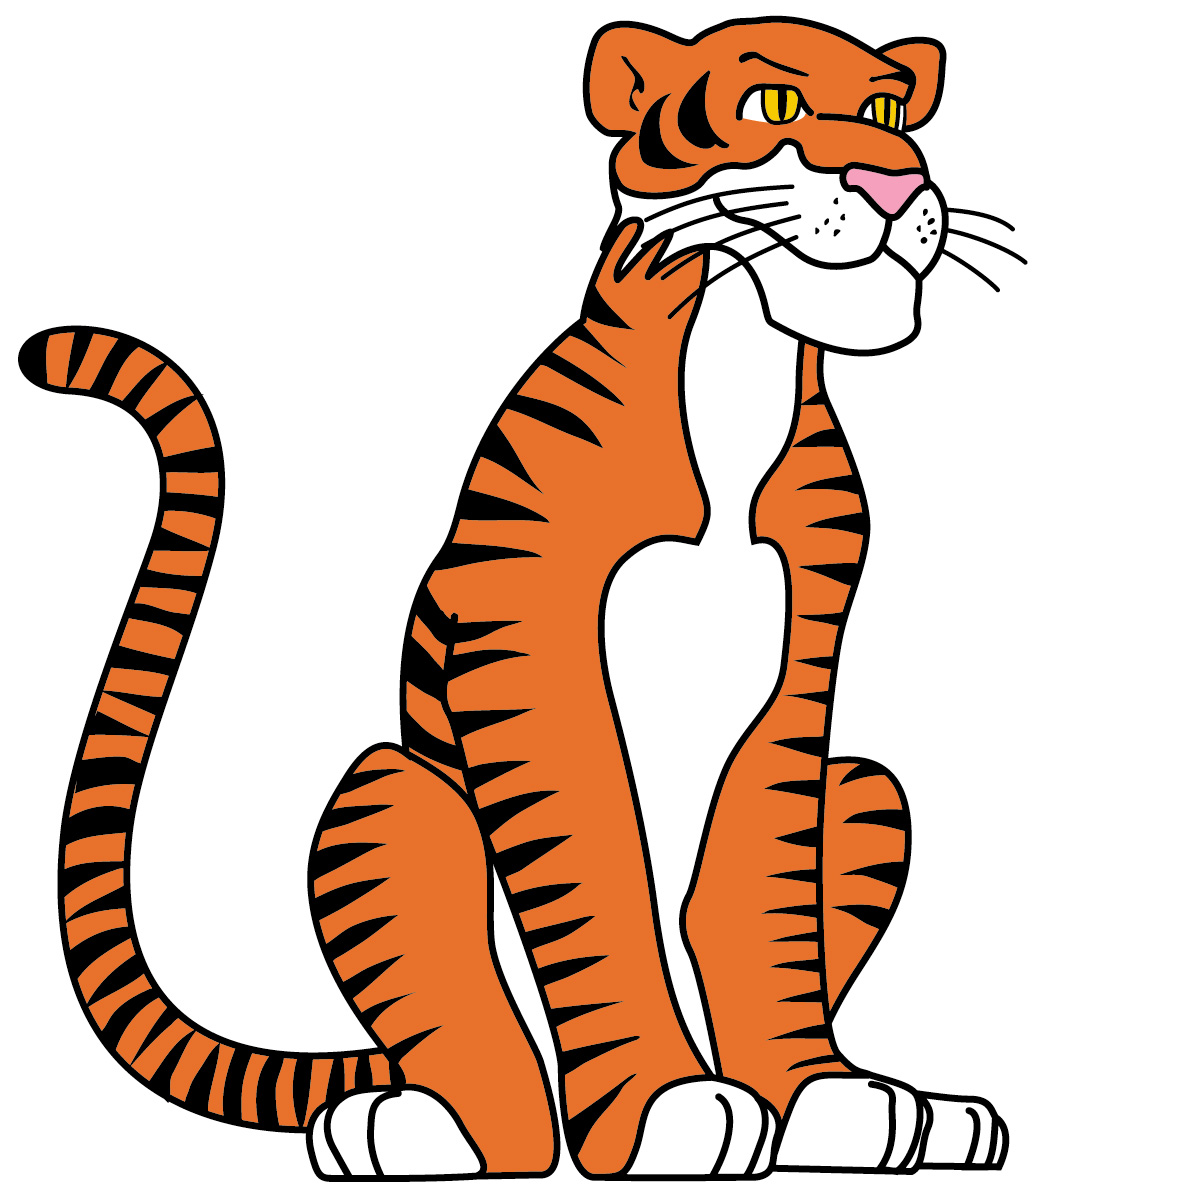 Cartoon Tiger Drawing - ClipArt Best